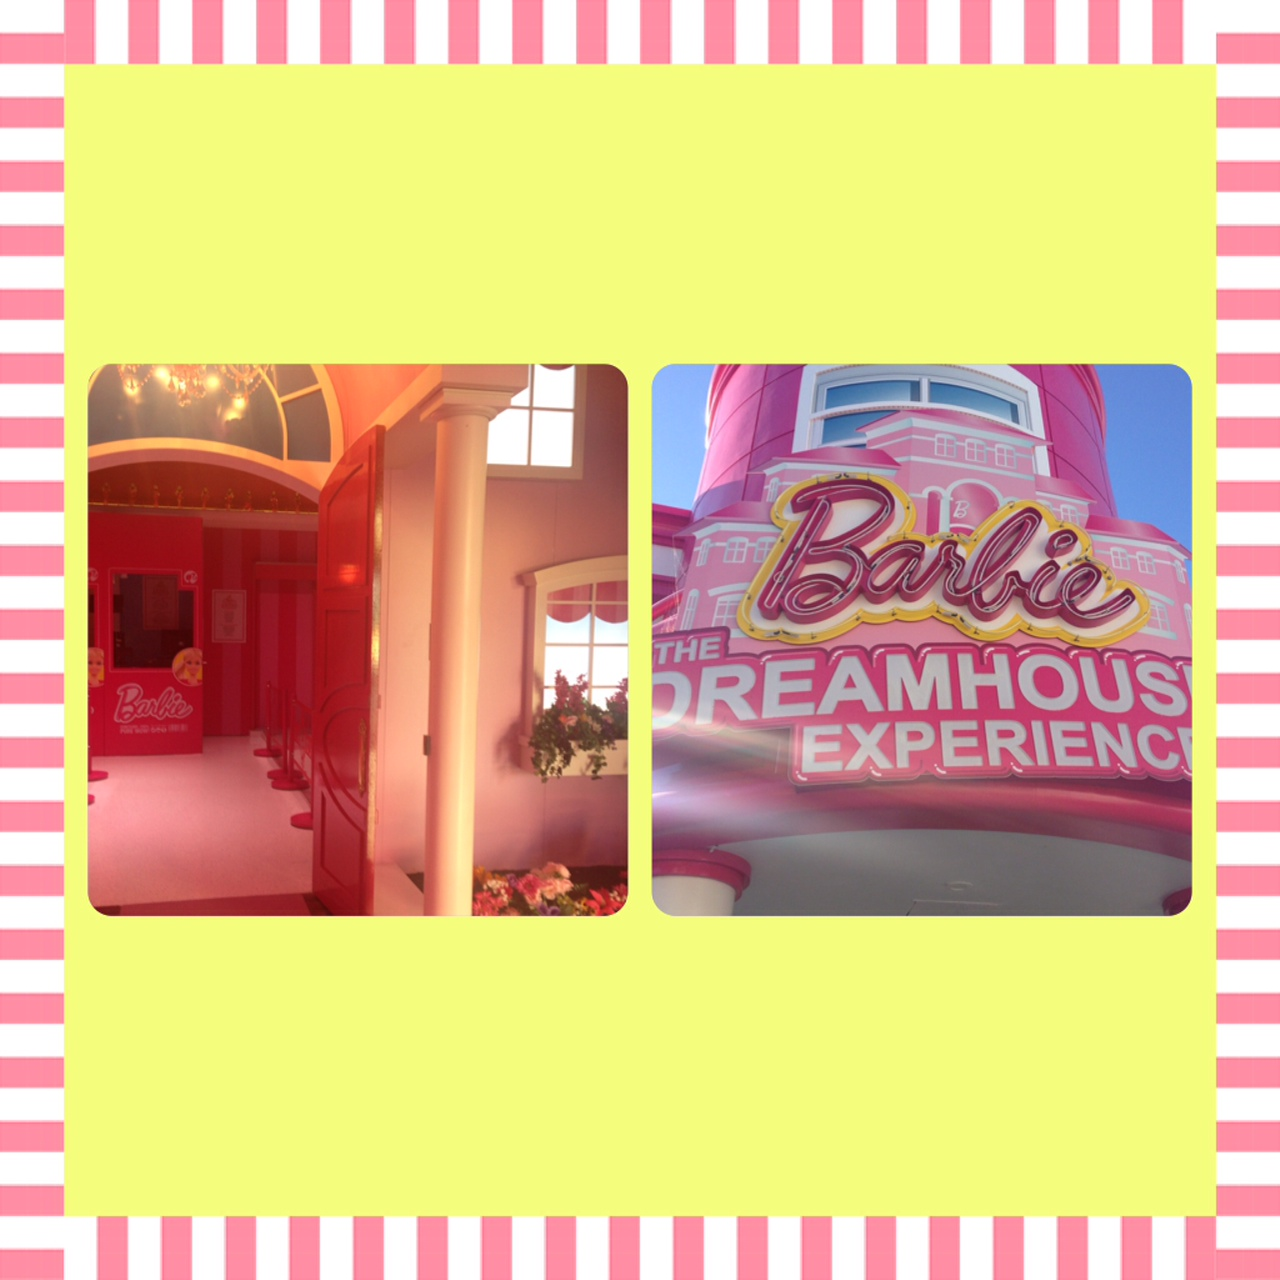 Barbie Dream House Experience Florida: Where To Find Barbie's Dreamhouse In Florida